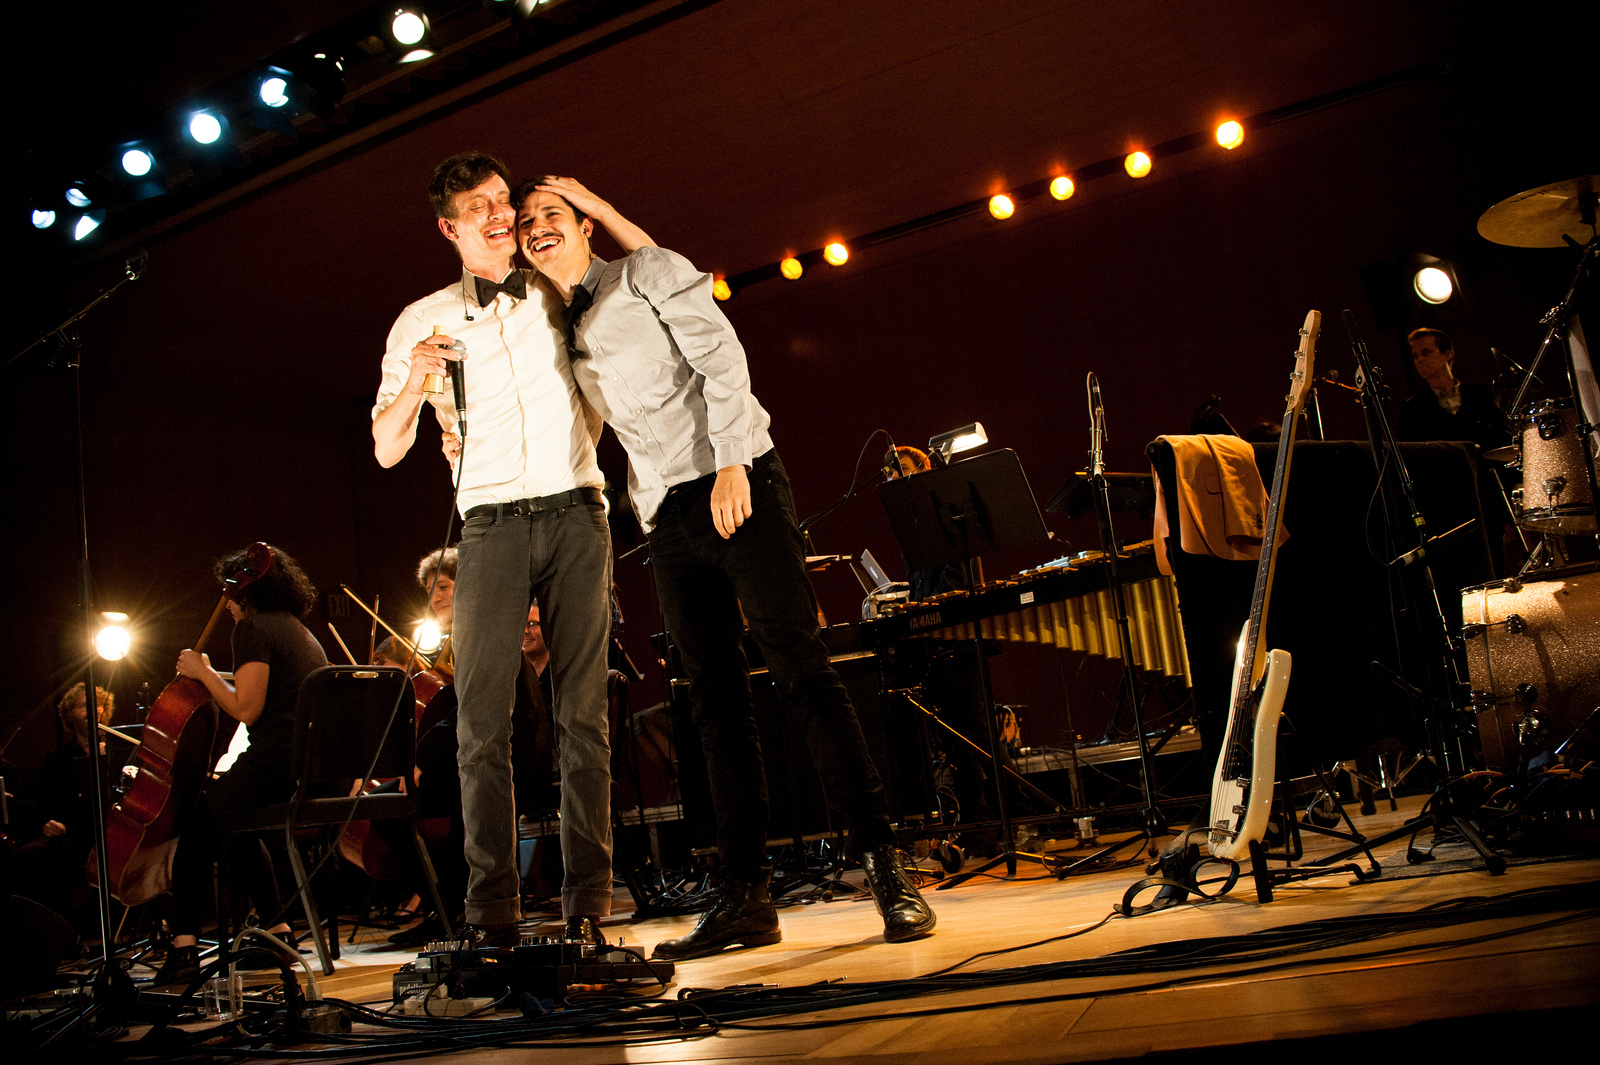 Efterklang's Mads Brauer and Casper Clausen celebrate at the end of the show.